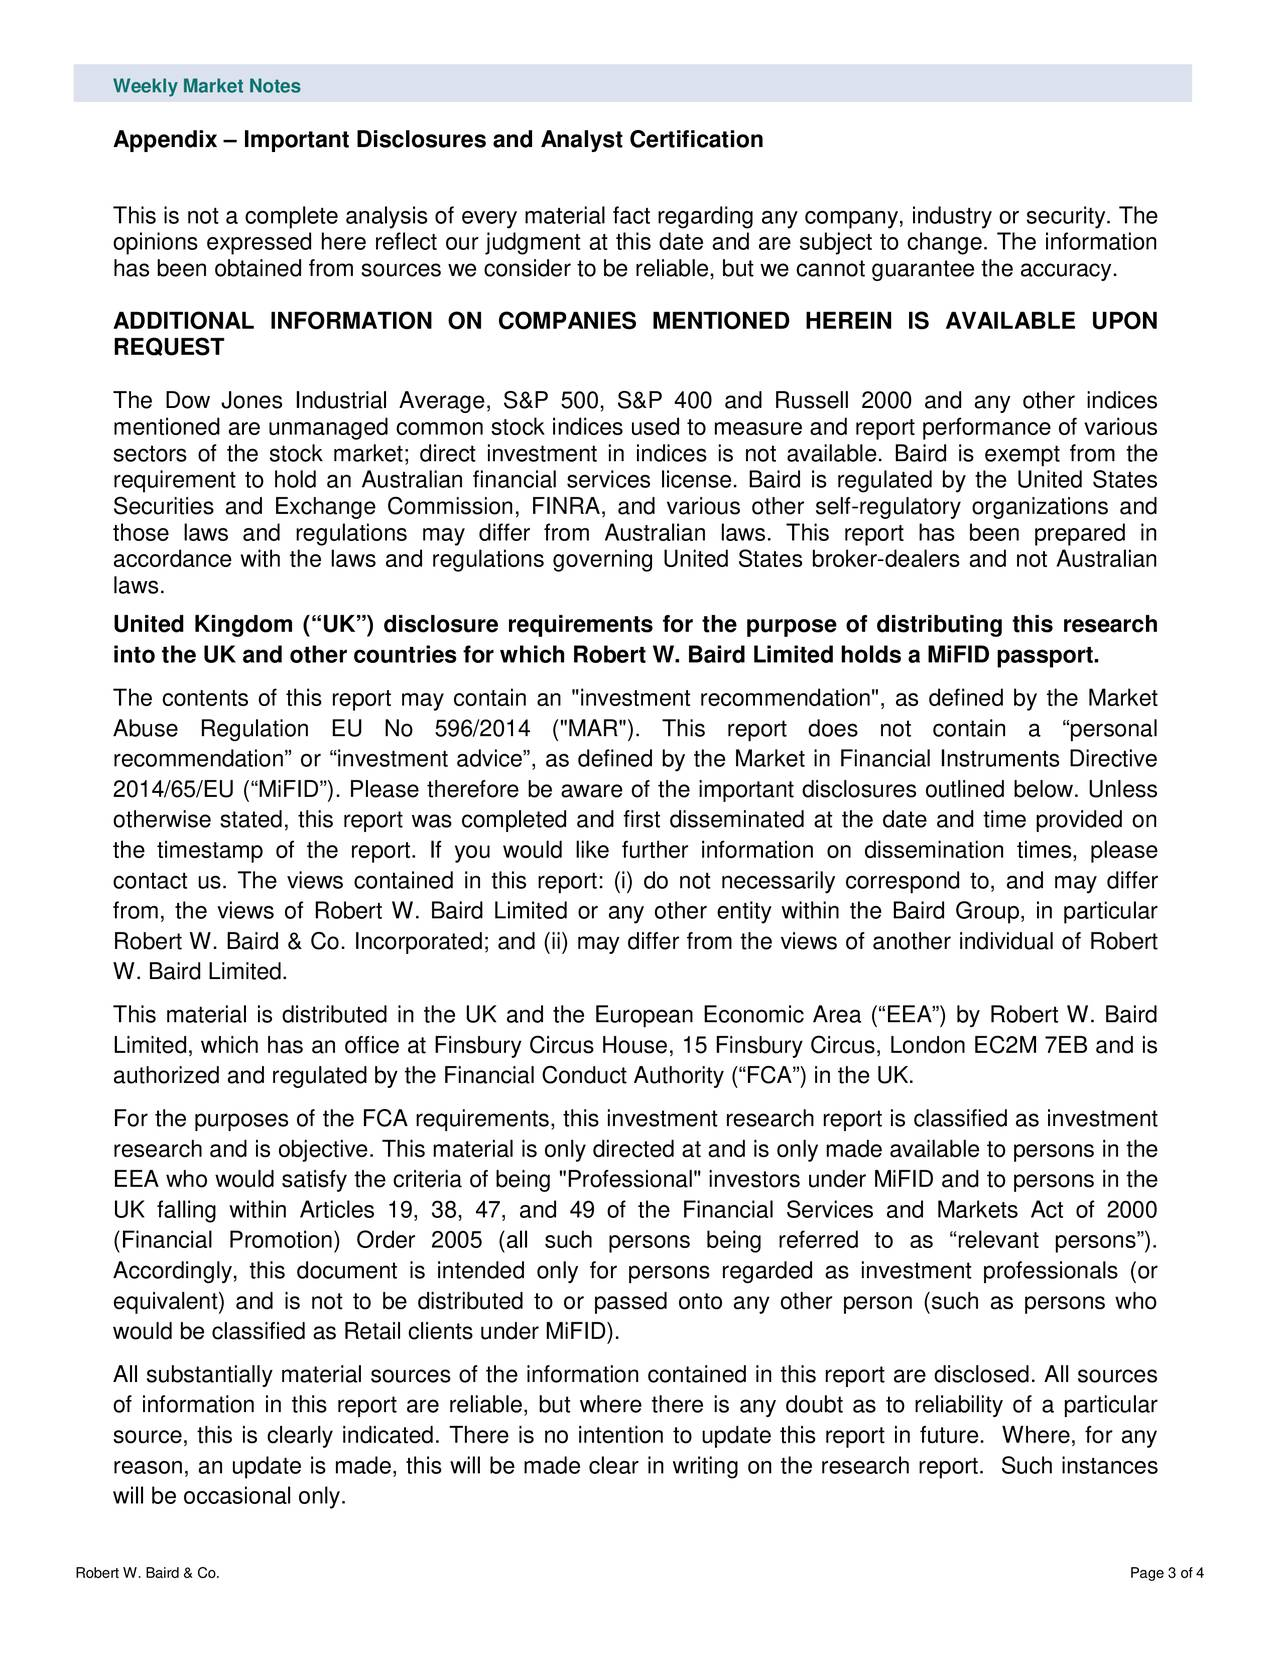 """Appendix – Important Disclosures and Analyst Certification This is not a complete analysis of every material fact regarding any company, industry or security. The opinions expressed here reflect our judgment at this date and are subject to change. The information has been obtained from sources we consider to be reliable, but we cannot guarantee the accuracy. ADDITIONAL INFORMATION ON COMPANIES MENTIONED HEREIN IS AVAILABLE UPON REQUEST The Dow Jones Industrial Average, S&P 500, S&P 400 and Russell 2000 and any other indices mentioned are unmanaged common stock indices used to measure and report performance of various sectors of the stock market; direct investment in indices is not available. Baird is exempt from the requirement to hold an Australian financial services license. Baird is regulated by the United States Securities and Exchange Commission, FINRA, and various other self -regulatory organizations and those laws and regulations may differ from Australian laws. This report has been prepared in accordance with the laws and regulations governing United States broker-dealers and not Australian laws. United Kingdom (""""UK"""") disclosure requirements for the purpose of distributing this research into the UK and other countries for which Robert W. Baird Limited holds a MiFID passport. The contents of this report may c ontain an """"investment recommendation"""", as defined by the Market Abuse Regulation EU No 596/2014 (""""MAR""""). This report does not contain a """"personal recommendation"""" or """"investment advice"""", as defined by the Market in Financial Instruments Directive 2014/65/EU (""""MiFID""""). Please therefore be aware of the important disclosures outlined below. Unless otherwise stated, this report was completed and first disseminated at the date and time provided on the timestamp of the report. If you would like further information on dissemination times, please contact us. The views contained in this report: (i) do not necessarily correspond to, and may differ from, the views o"""